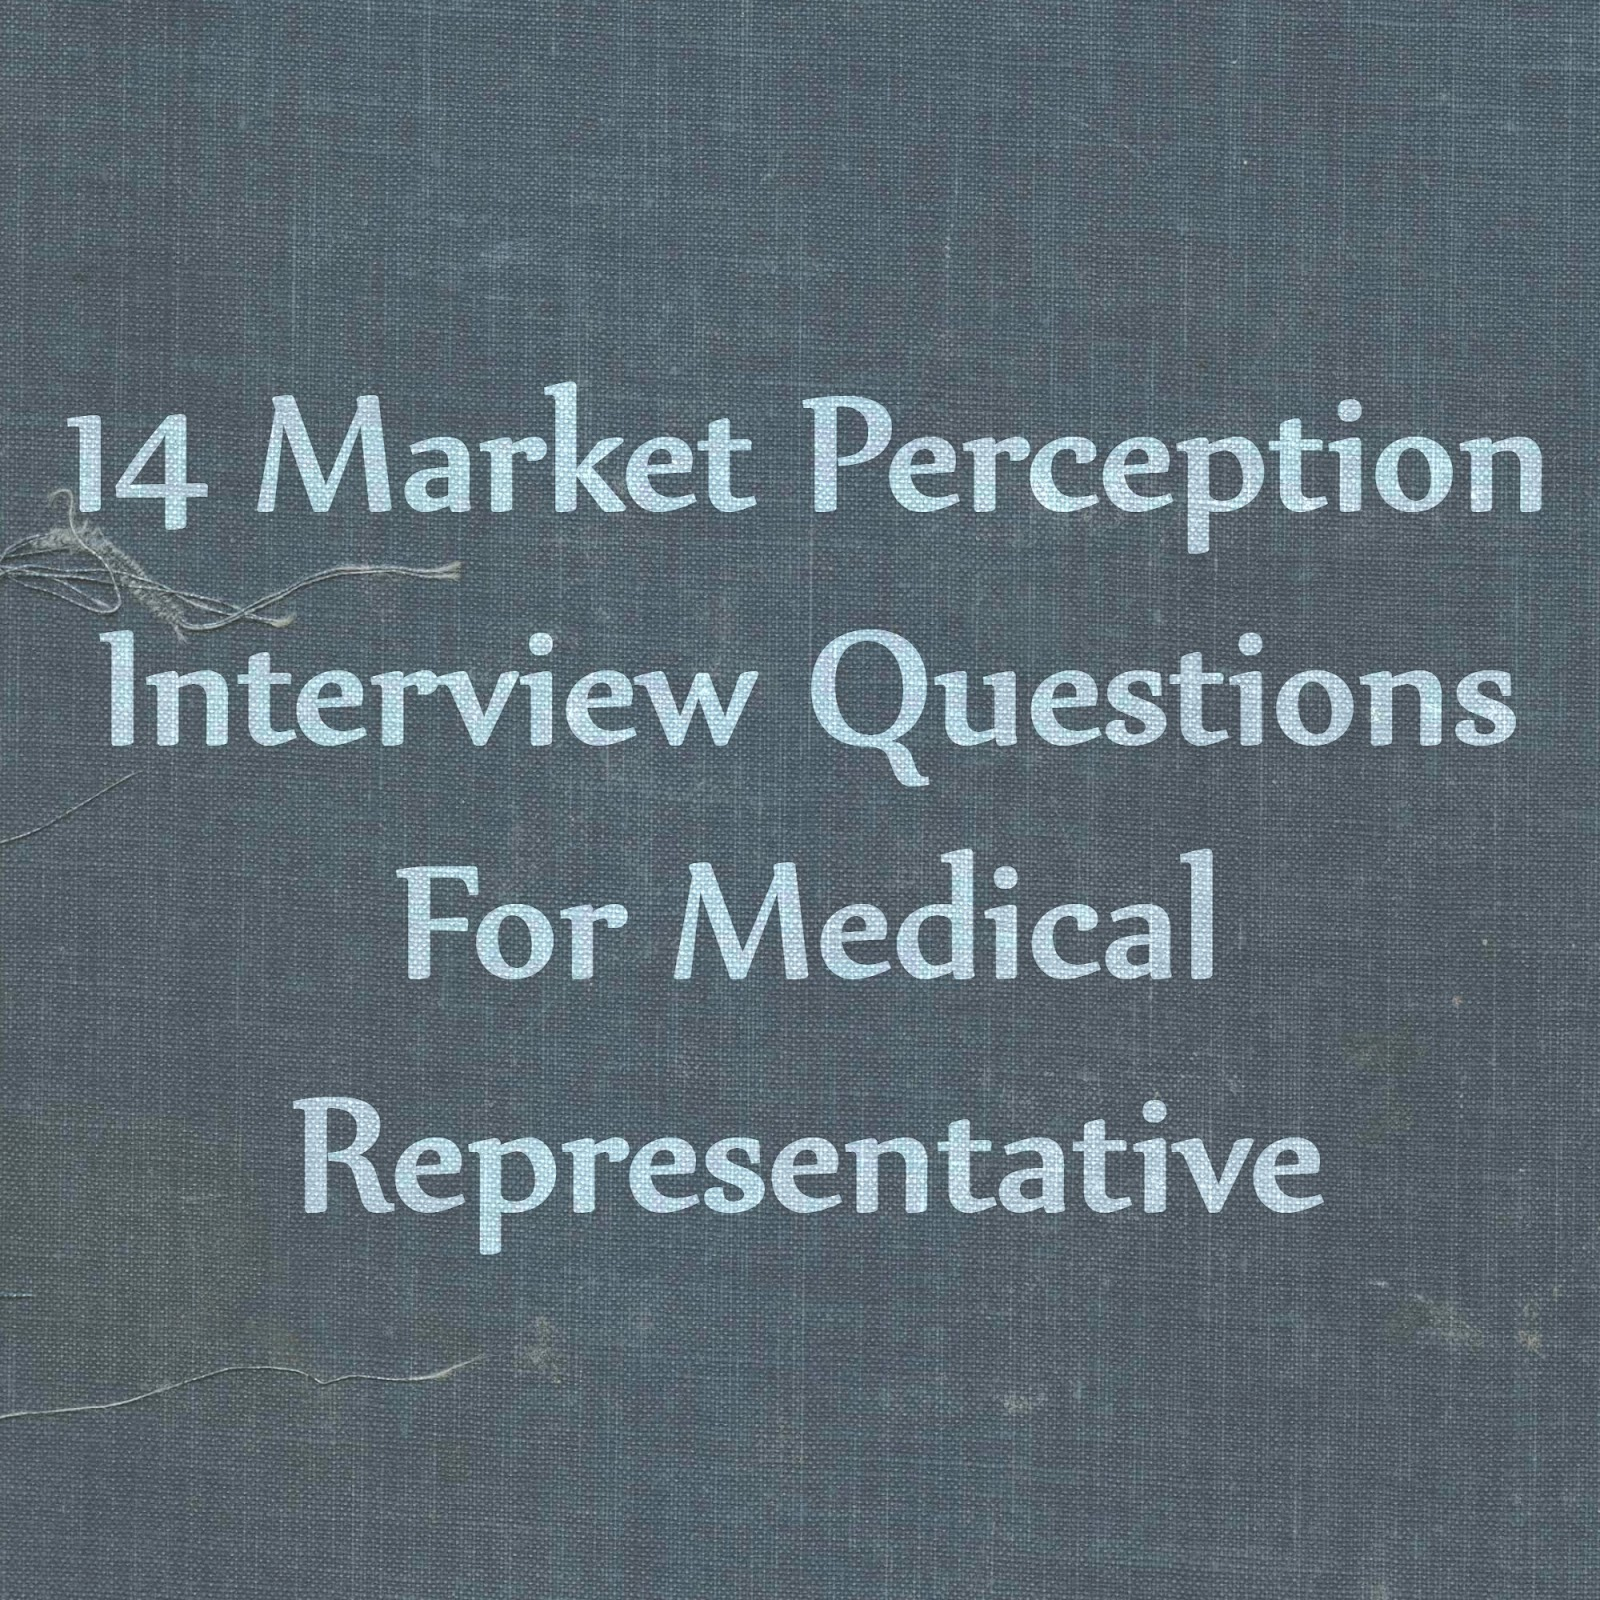 14 Market Perception Interview Questions For Medical Representative